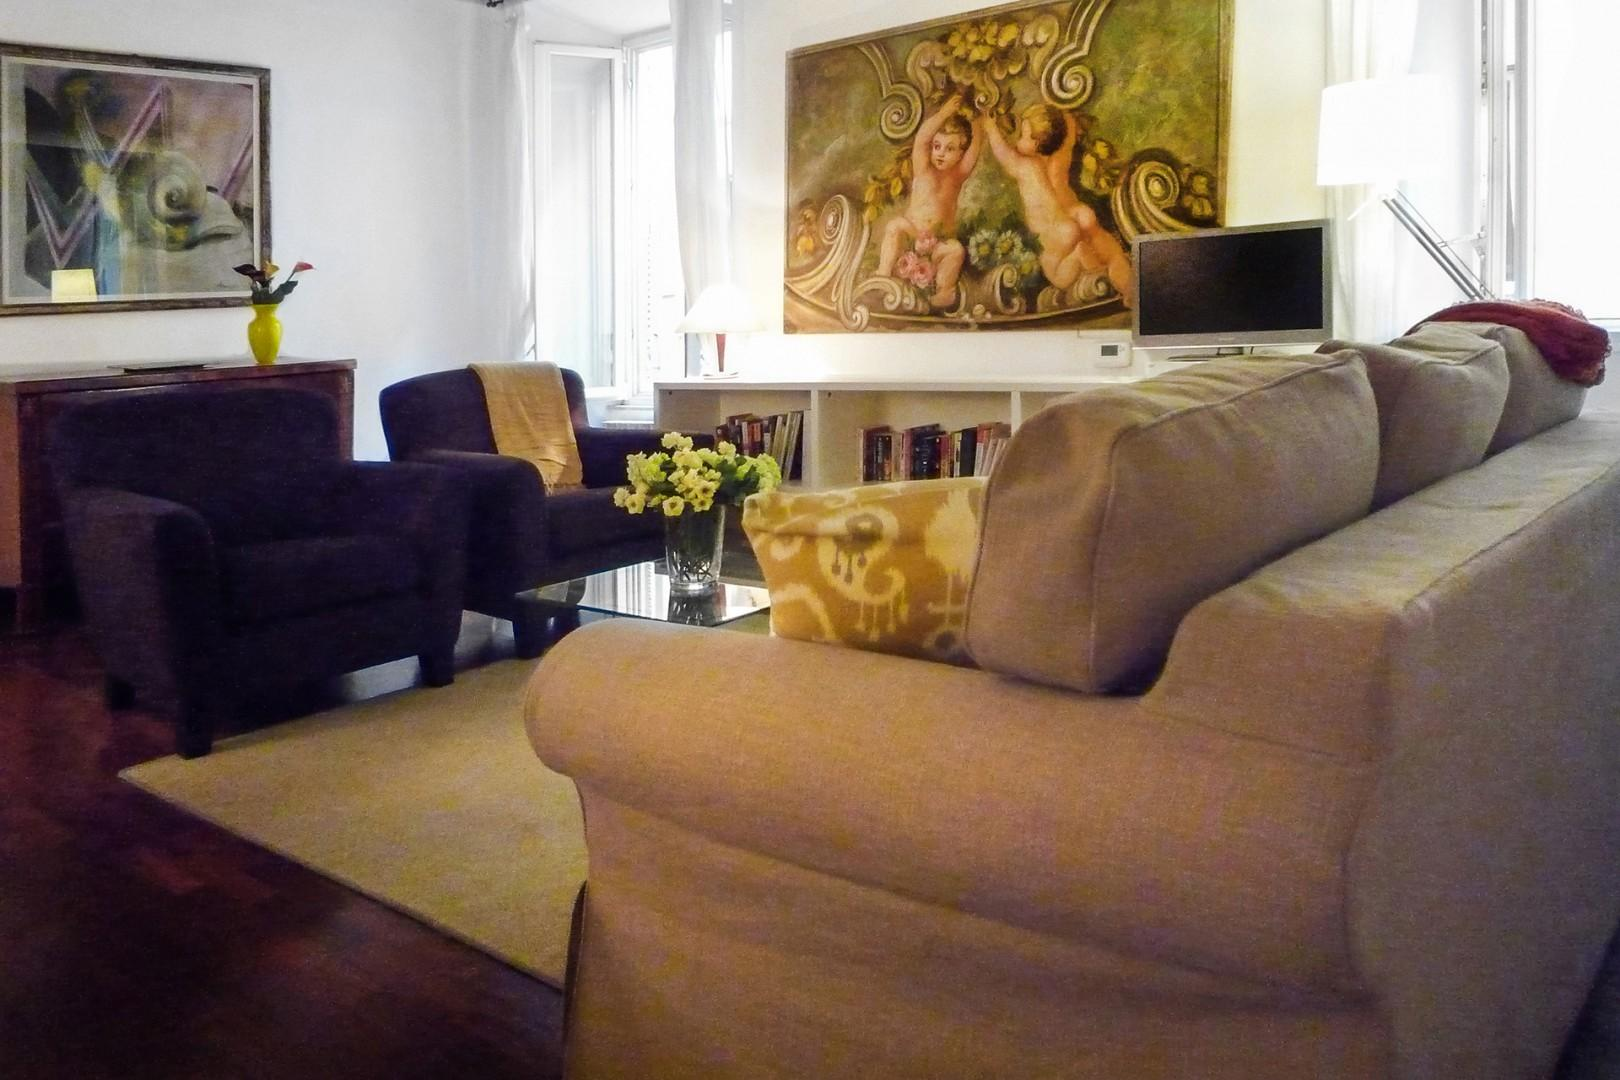 The apartment is decorated with fine taste and quality pieces.